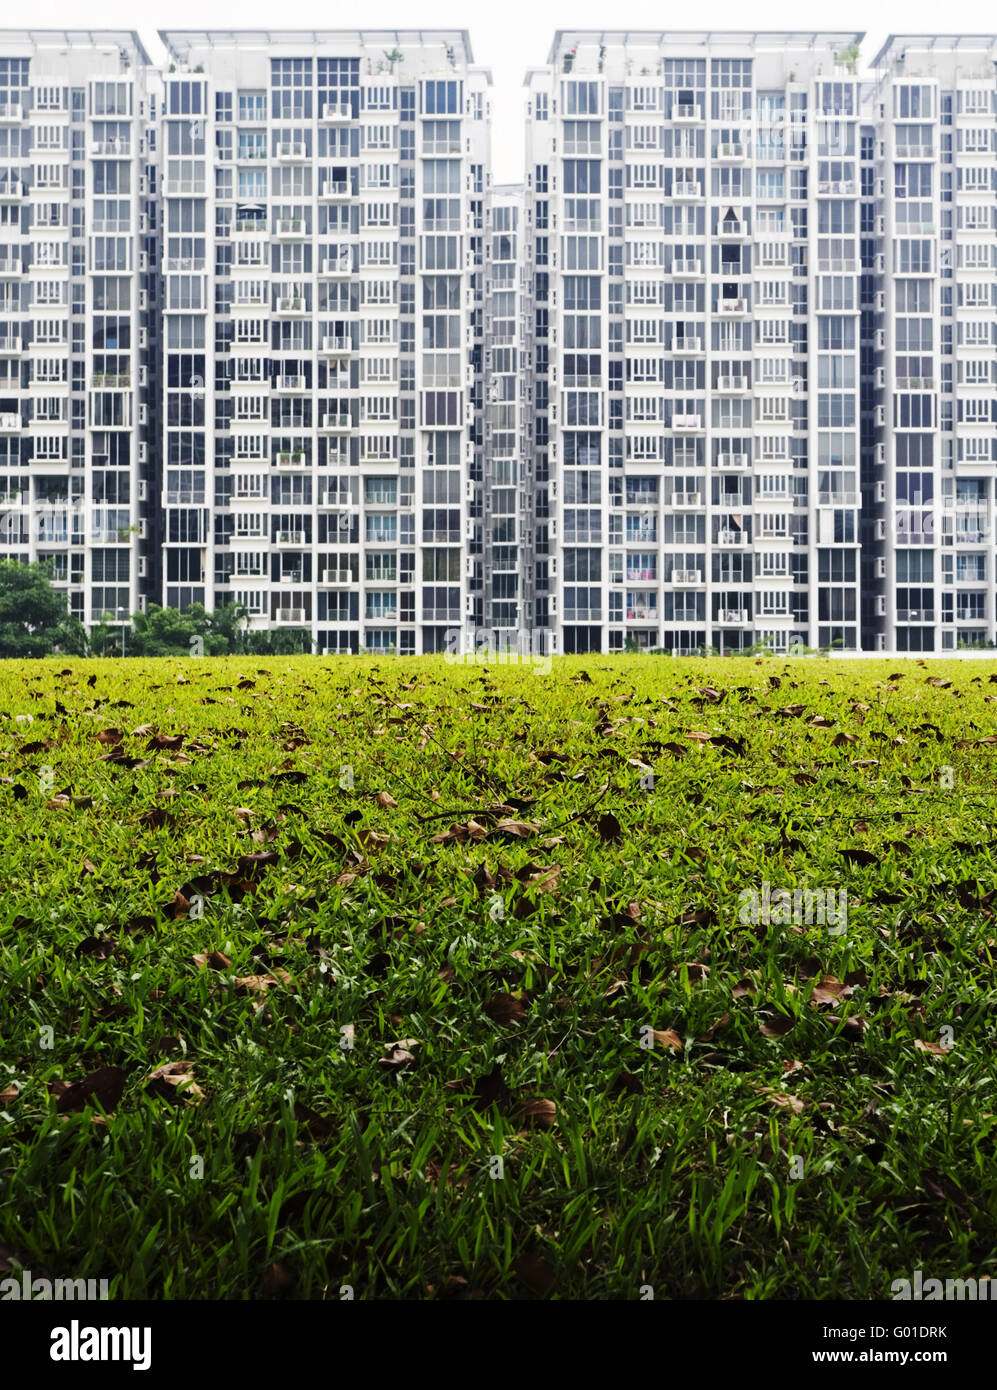 condominium housing with green grass field foreground. - Stock Image